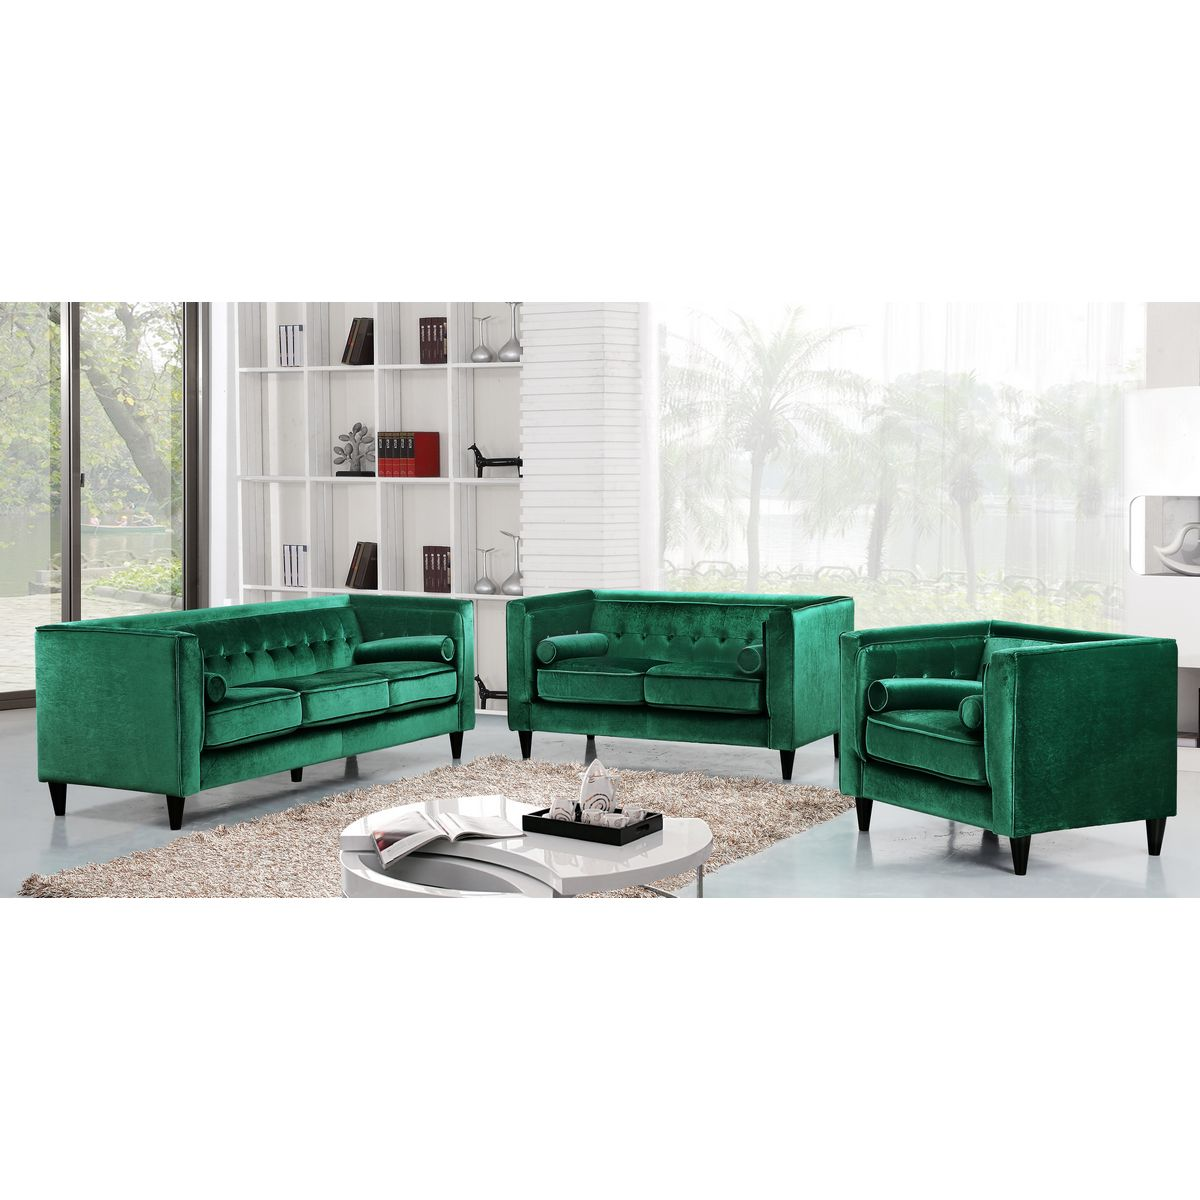 Etonnant Meridian Furniture Taylor Green Velvet Sofa W/ Tufted Back U0026 Bolster Pillows